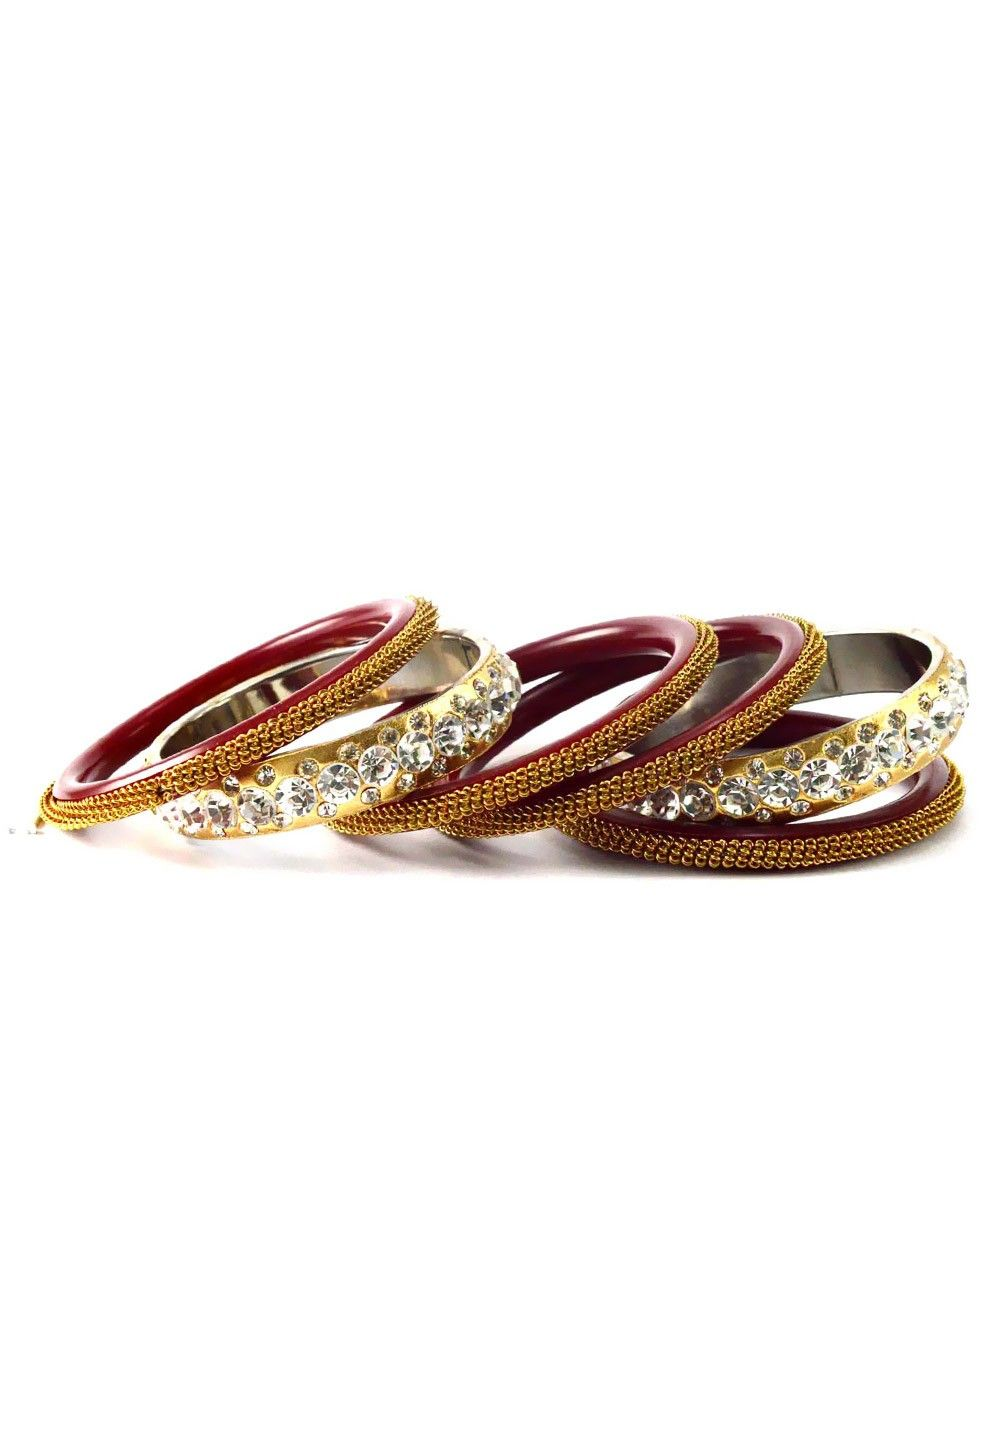 Stone Studded Bangle Set in Maroon and Golden